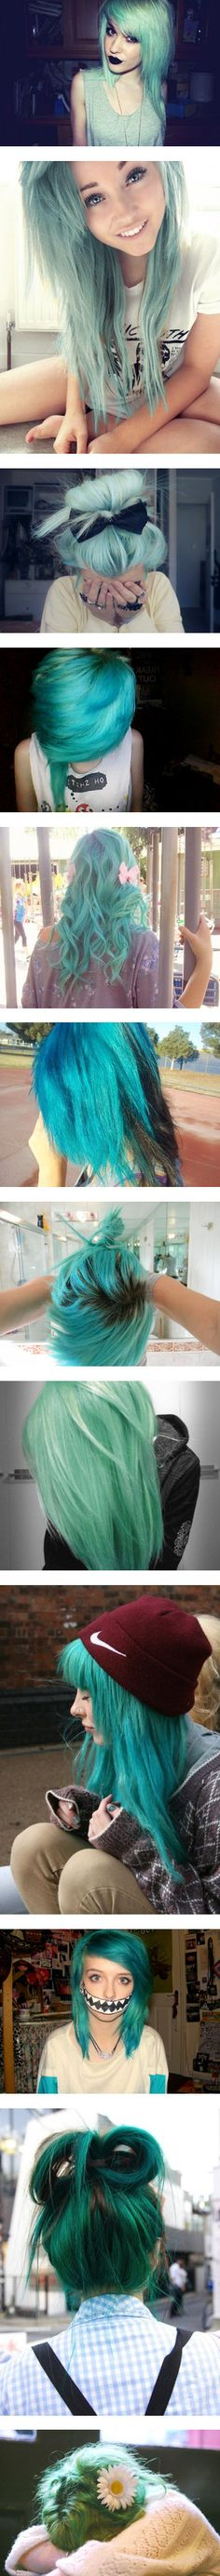 Blue hair is gorgeousss! I just don't have the strength  to do it. I love my hair too much. Haha ):